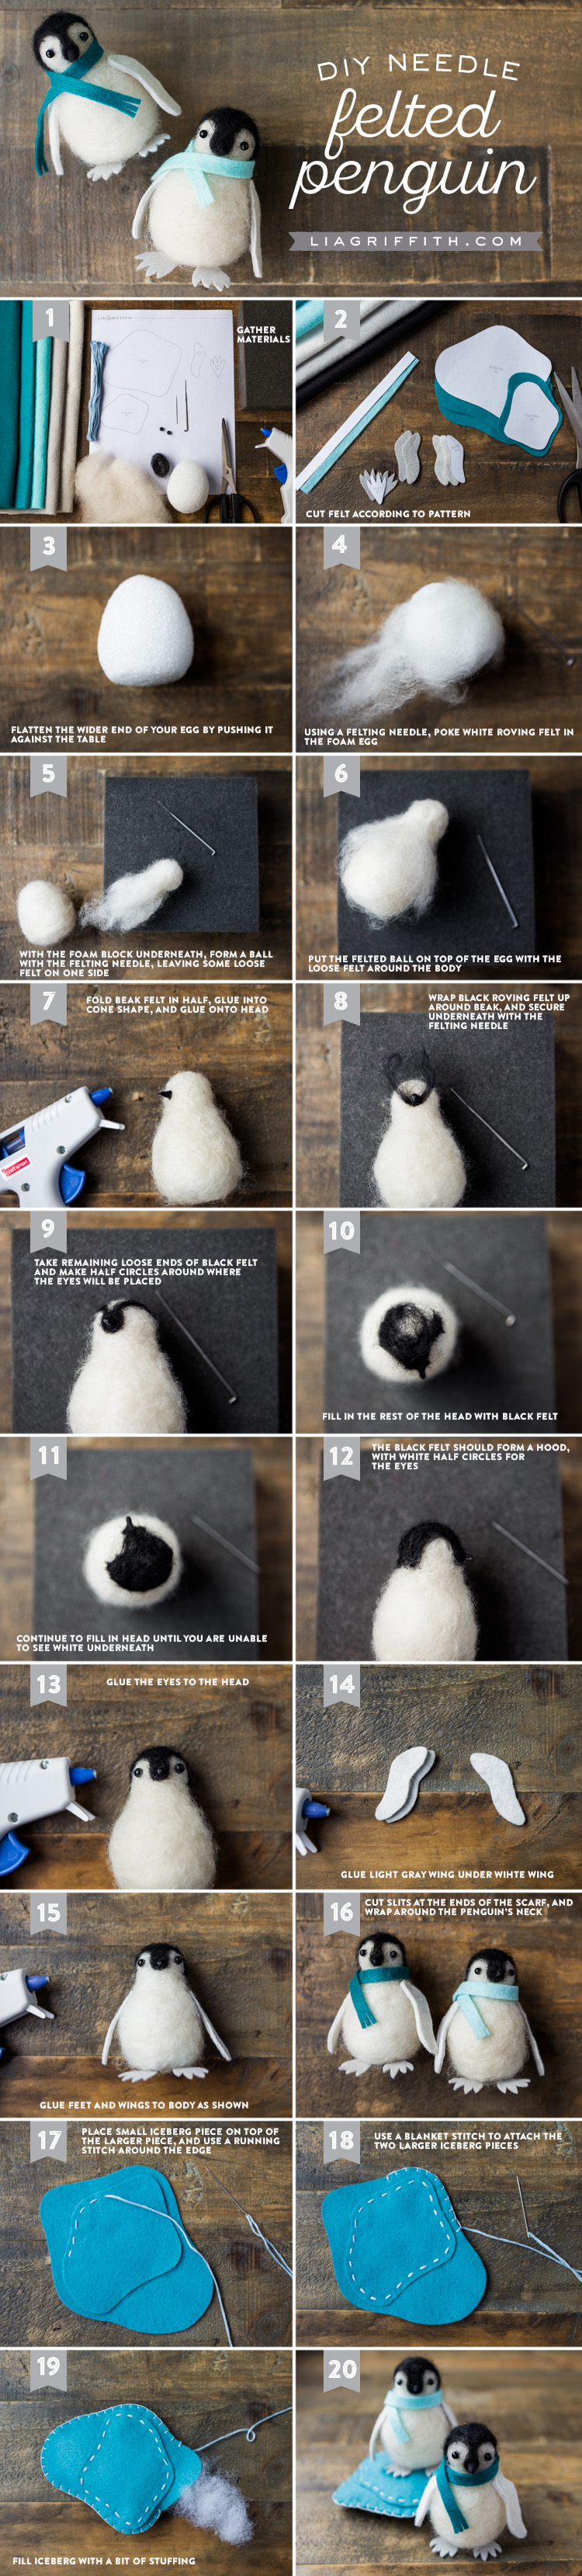 Photo tutorial for needle-felted penguin by Lia Griffith